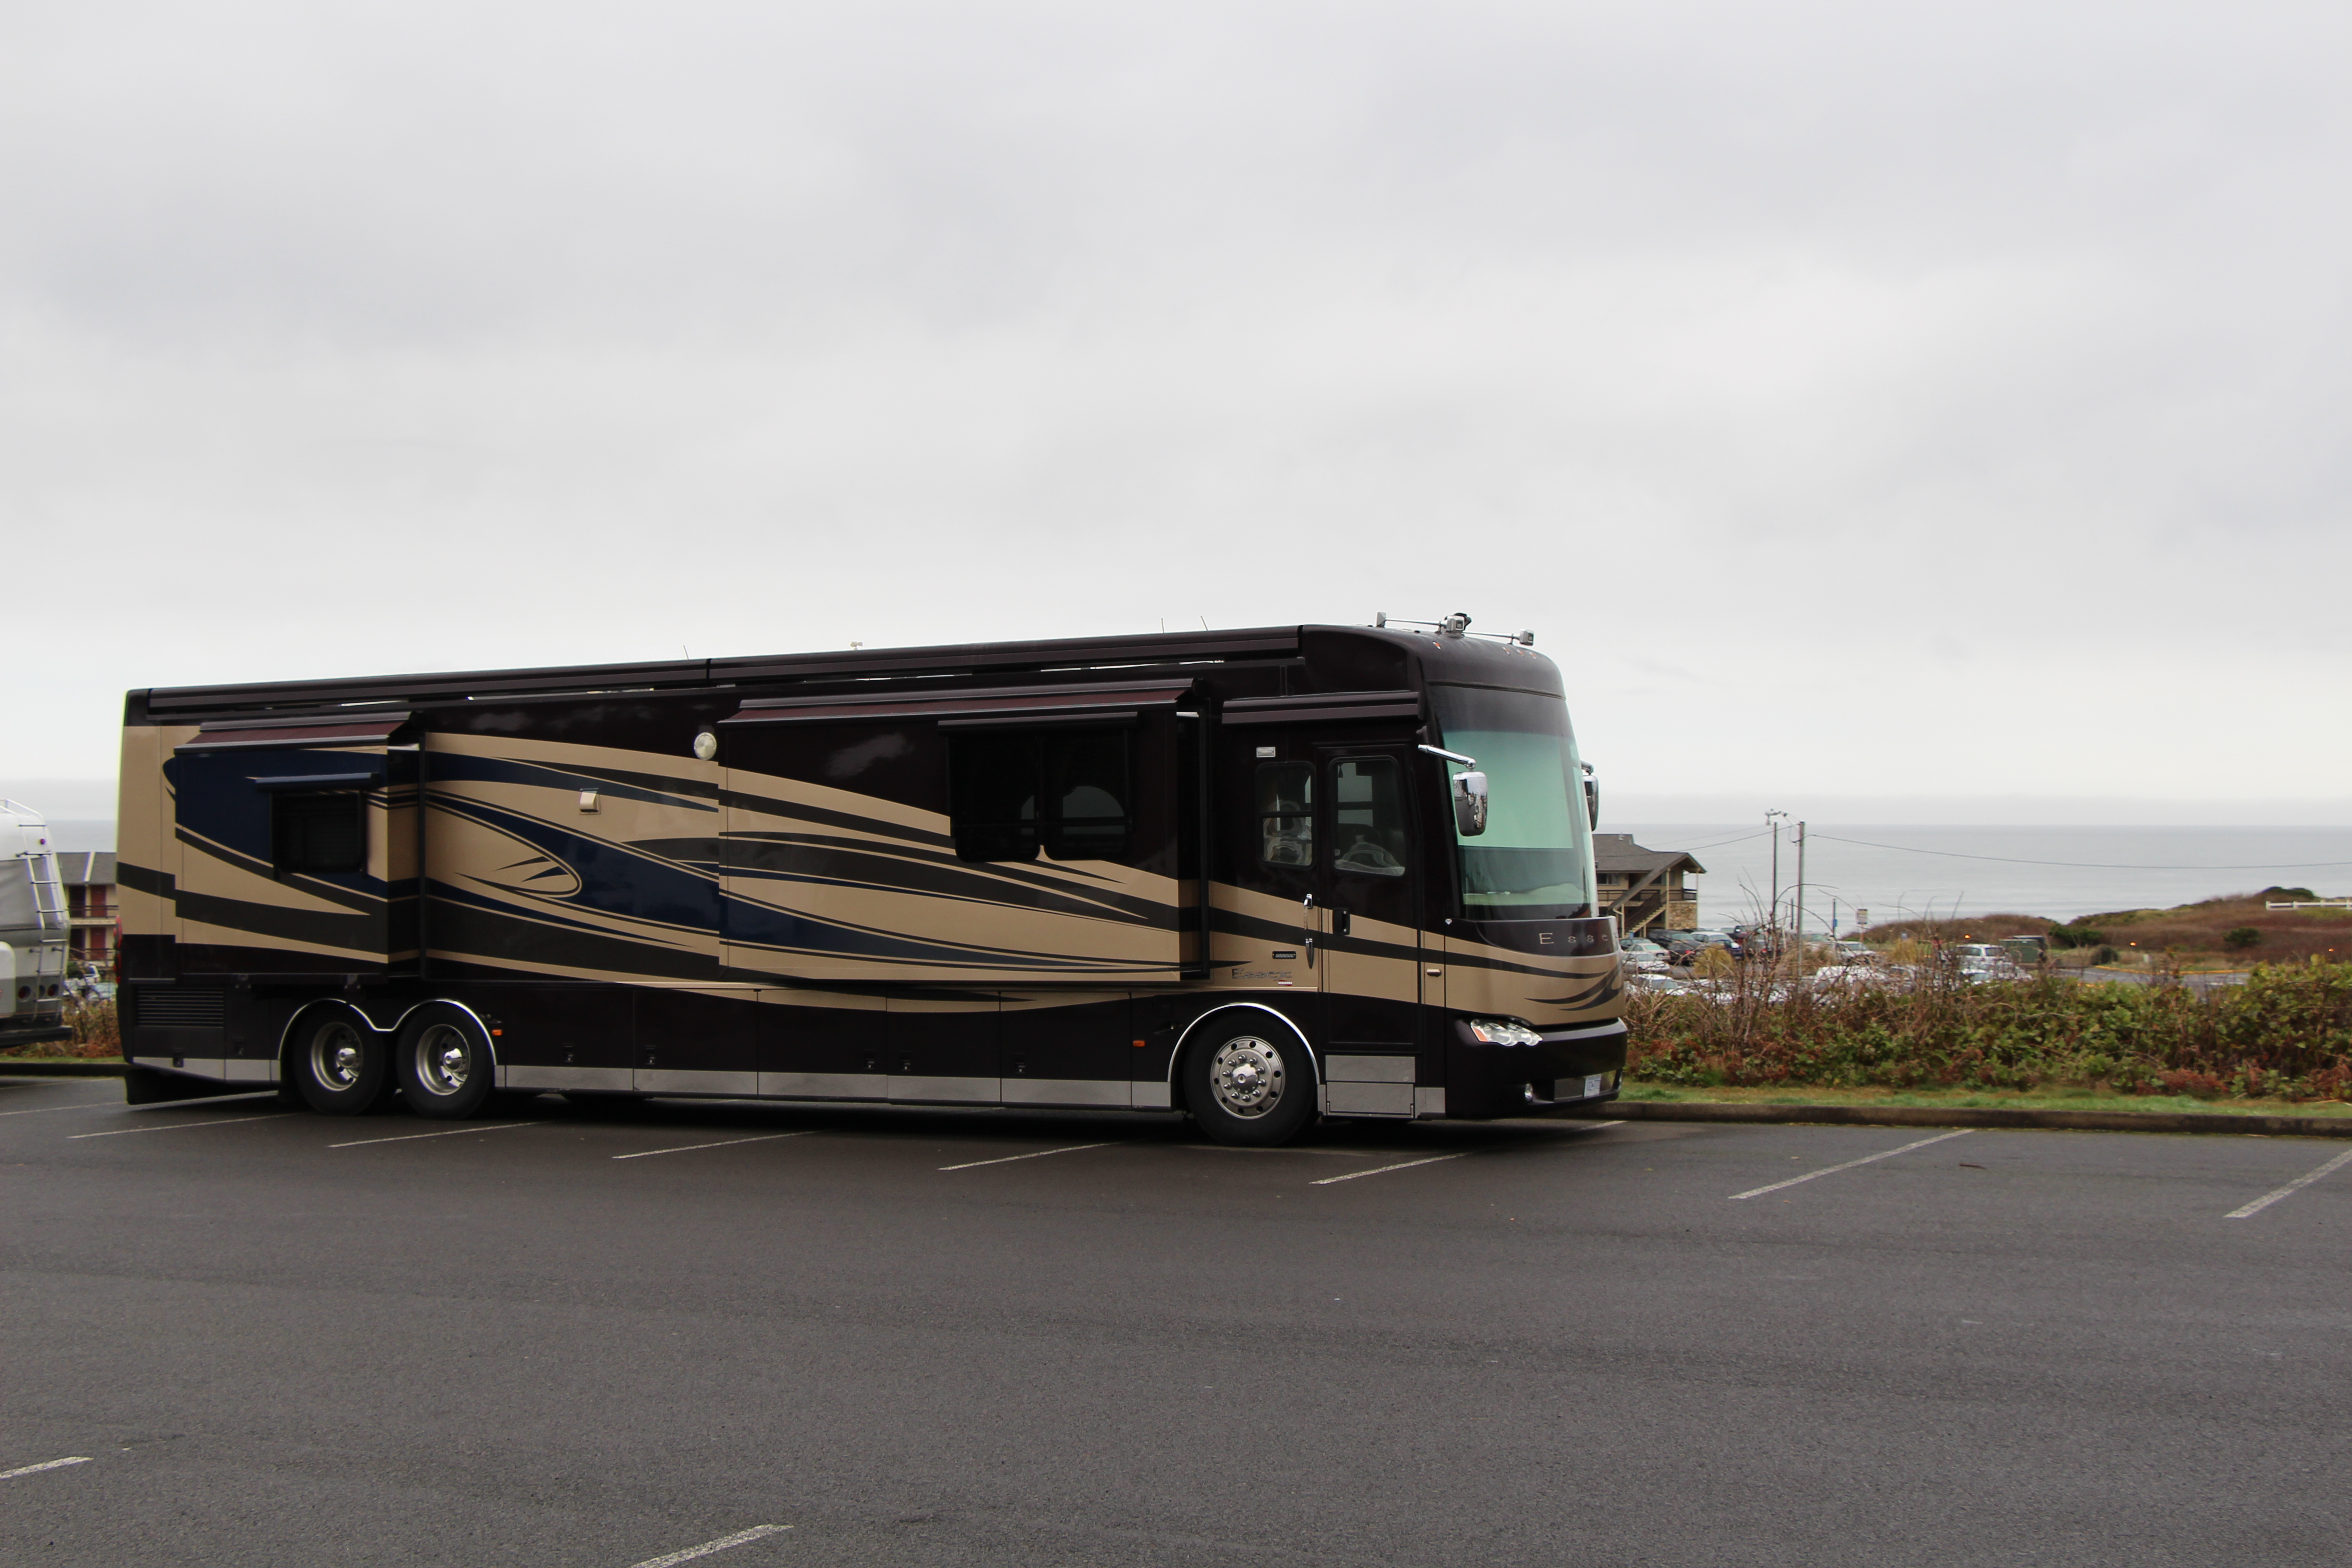 Motorhome parked in lot.